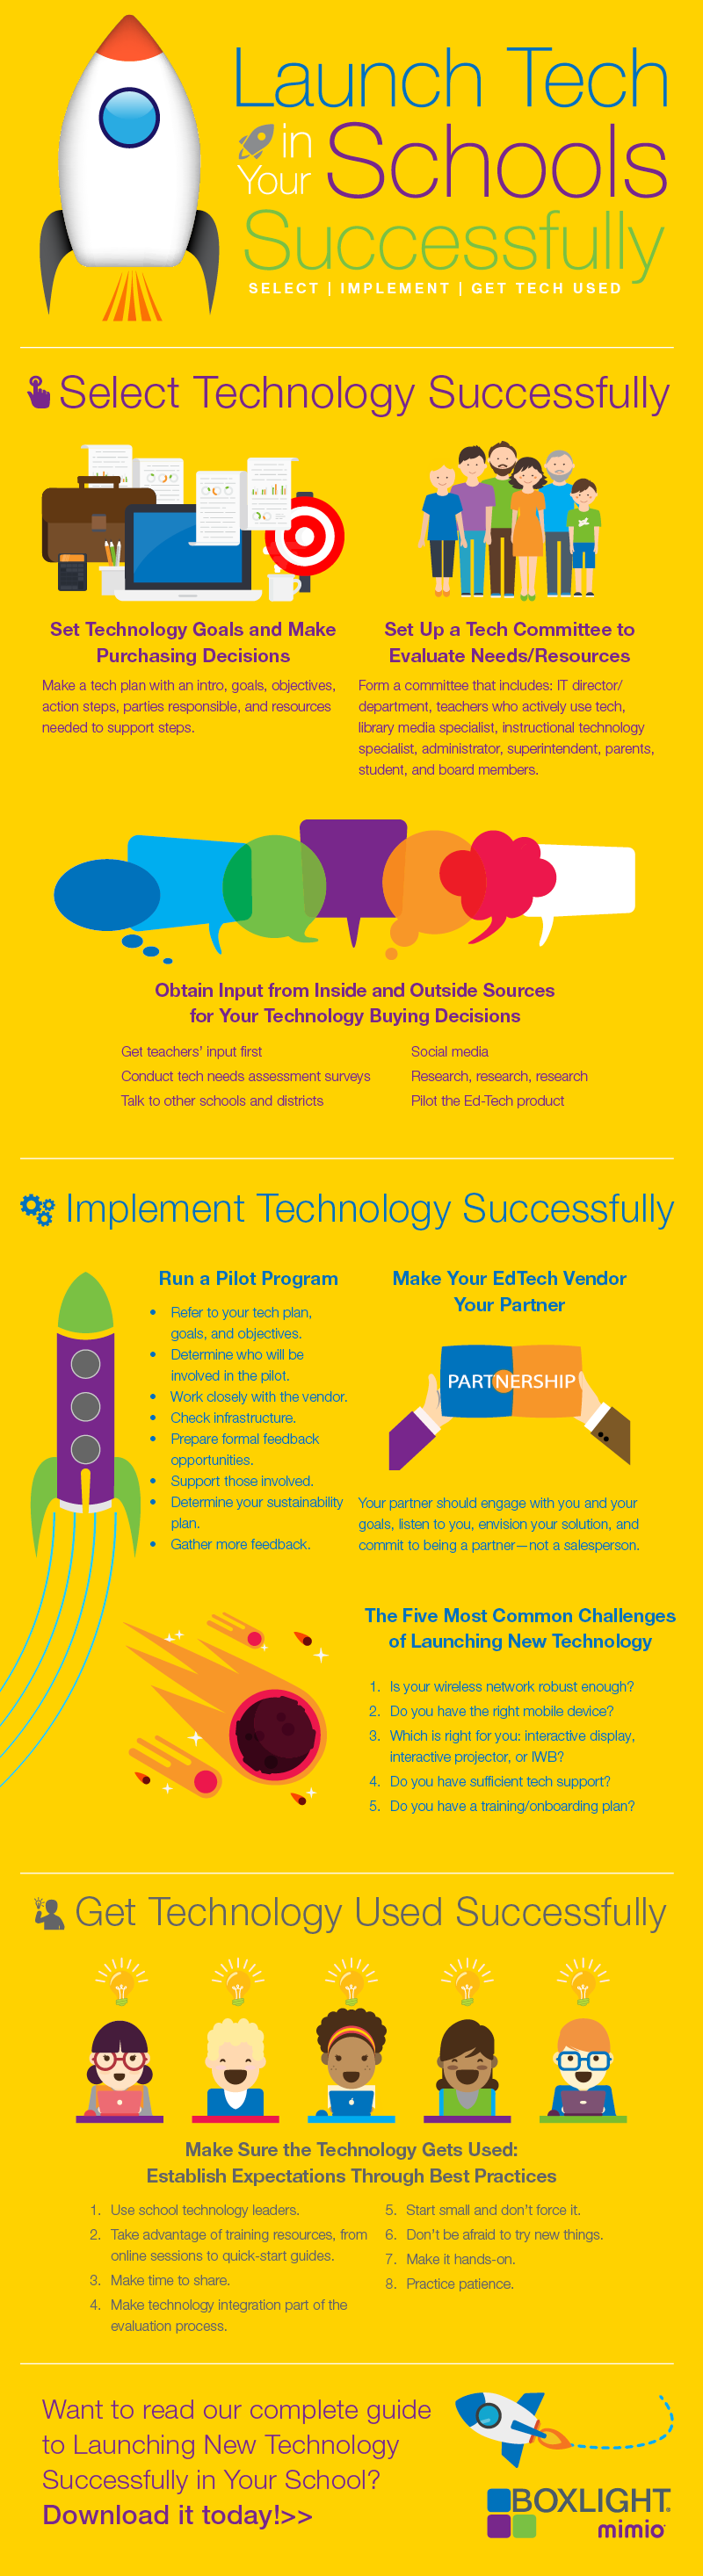 LaunchTechSuccessfully_Infographic.png